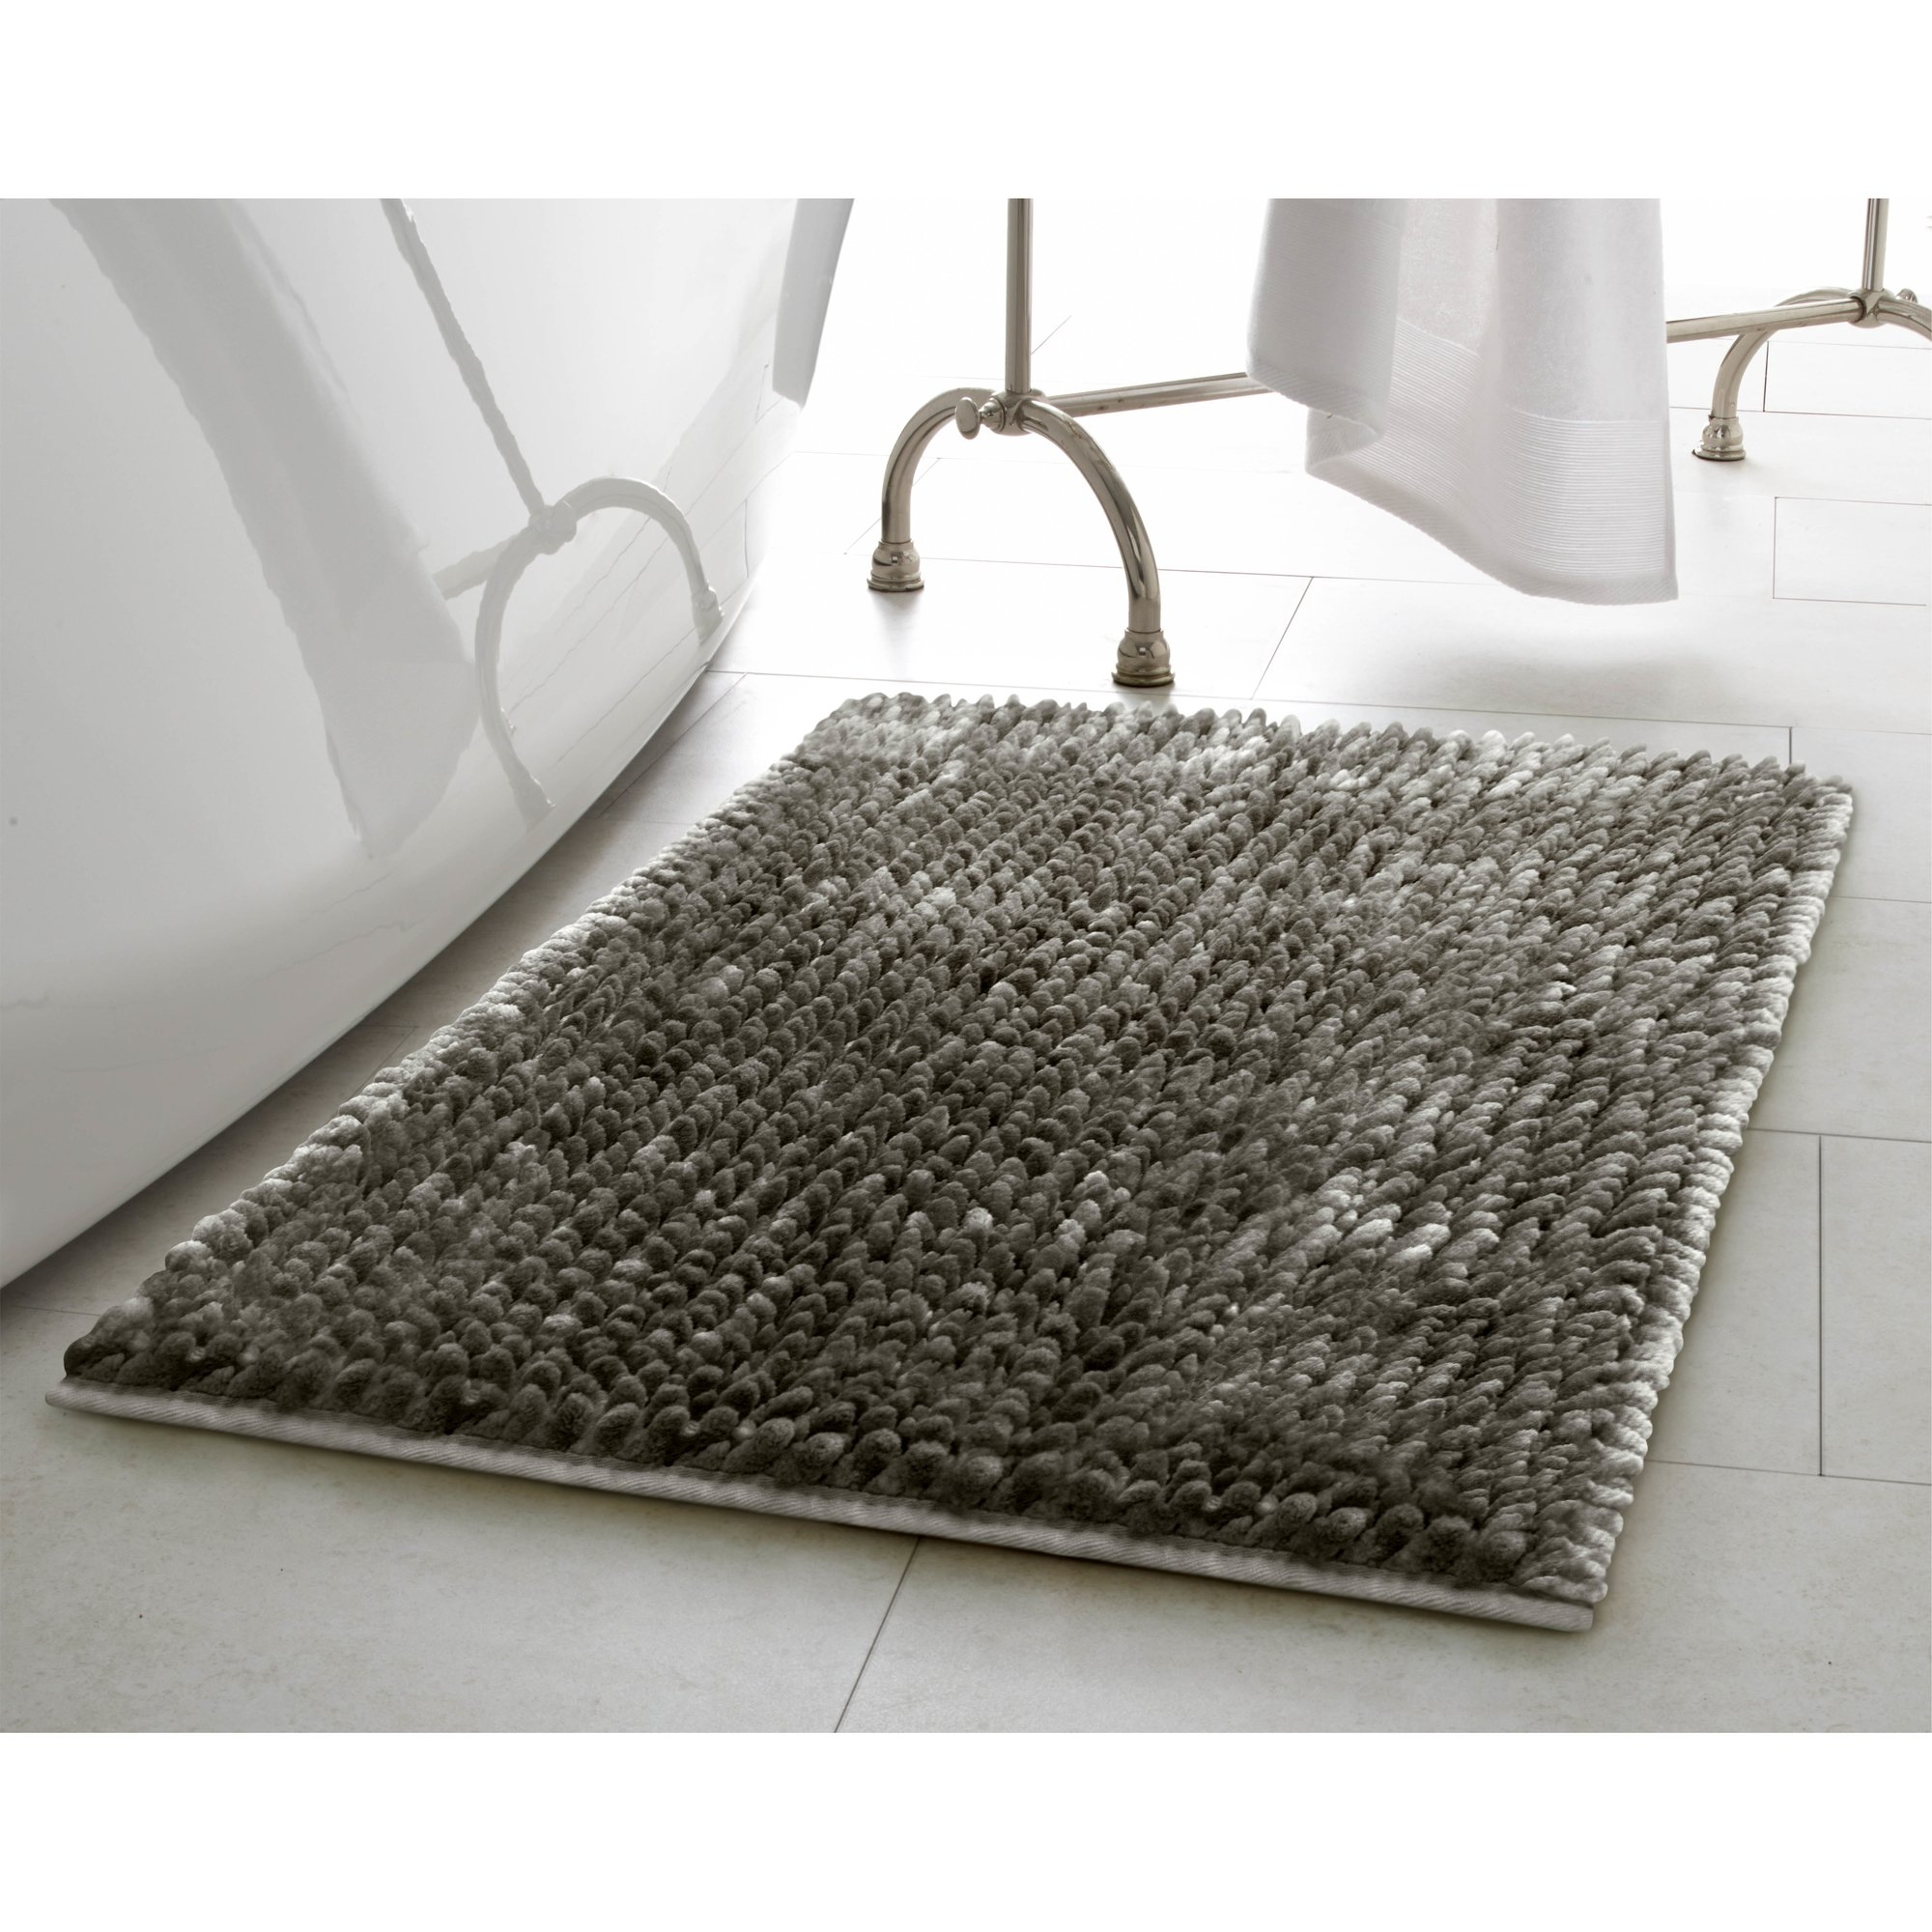 Permalink to Cut To Fit Bathroom Rug